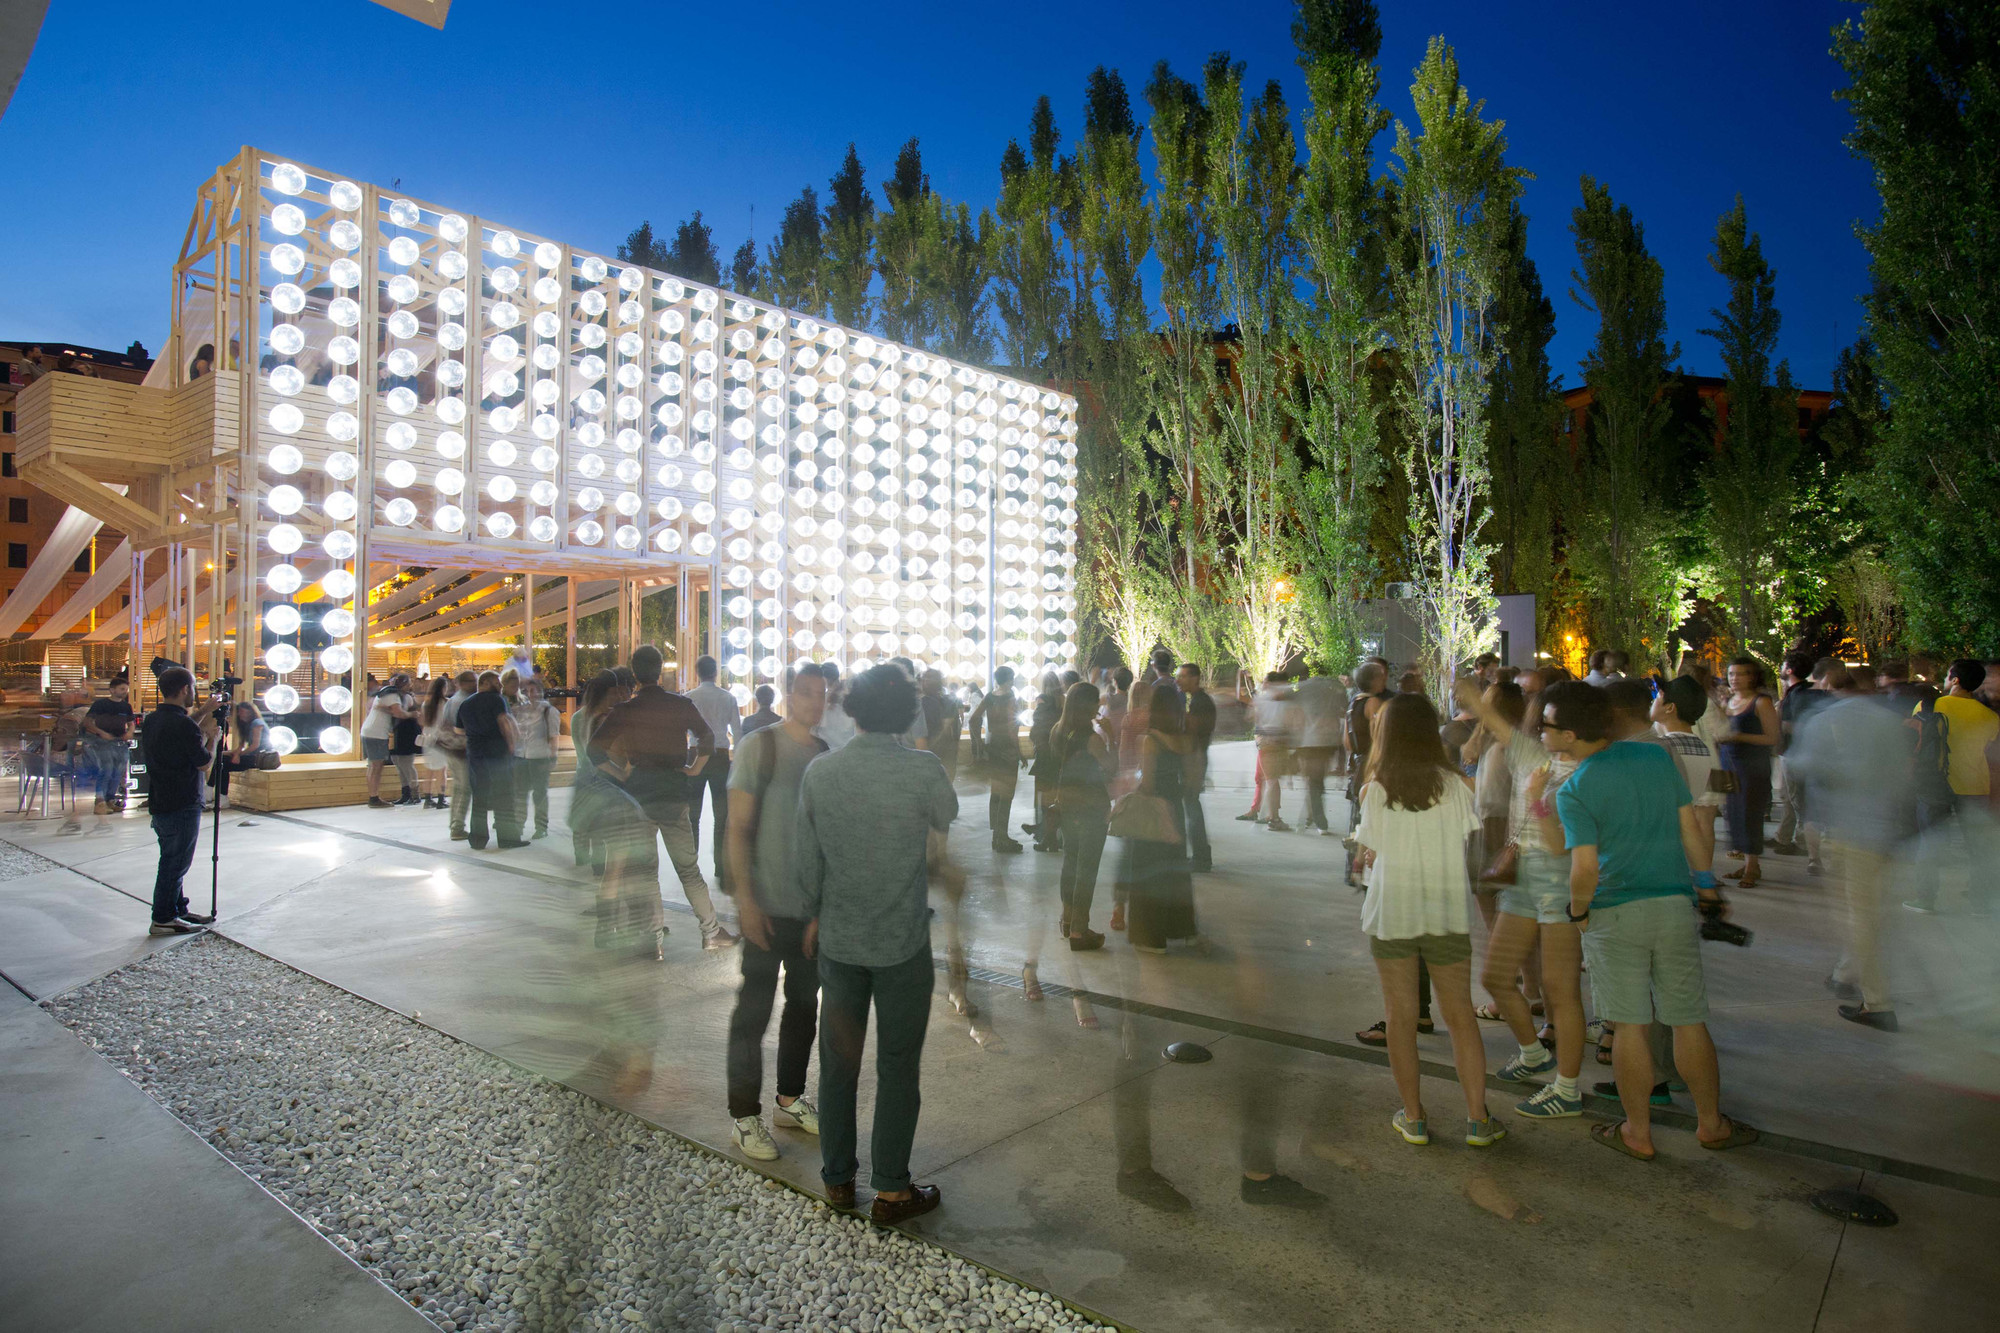 Orizzontale Illuminates Outdoor Theater with Recycled Keg Wall at MAXXI